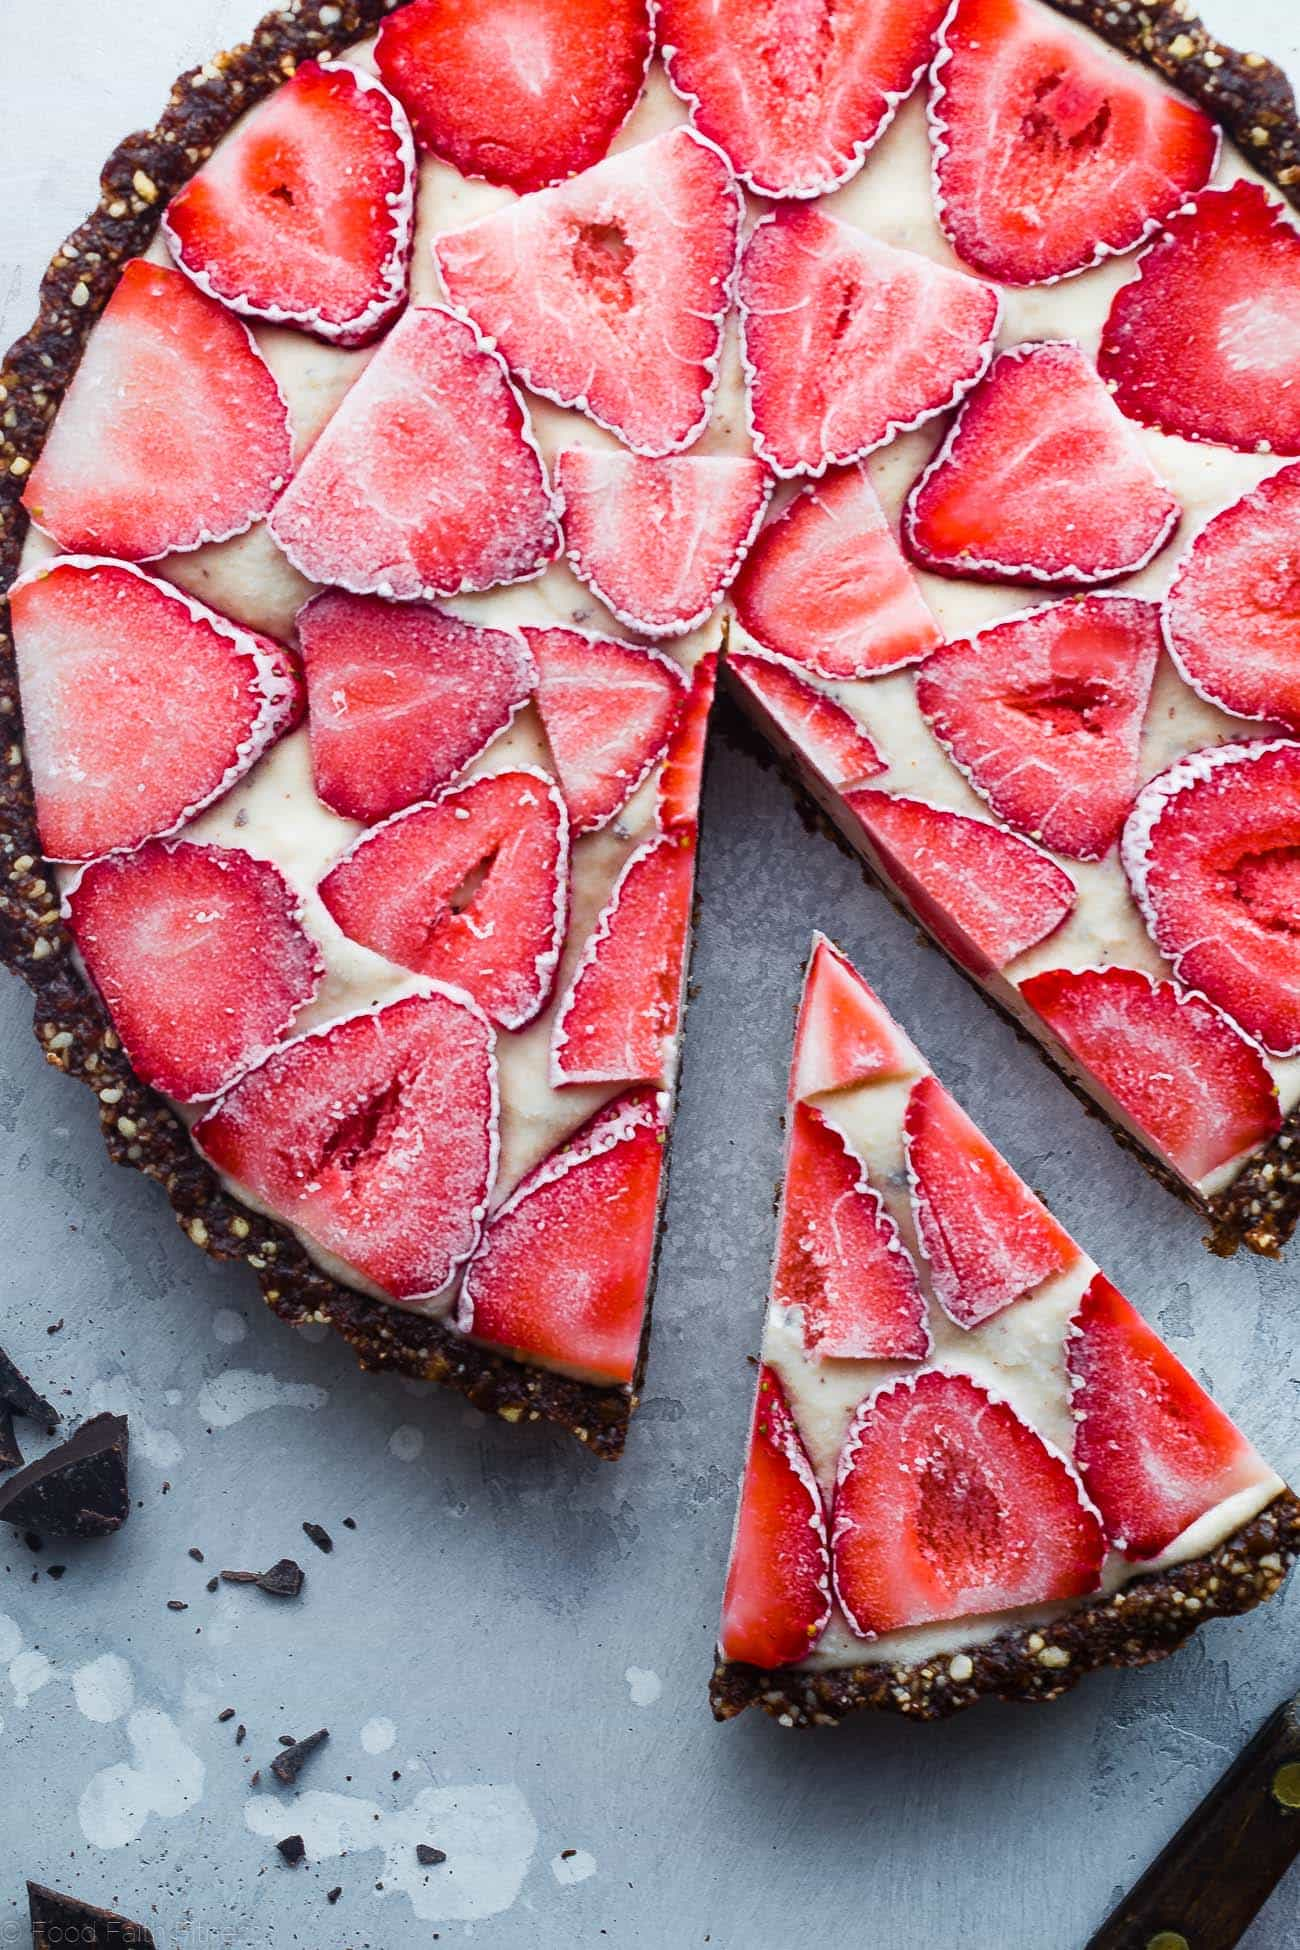 No-Bake Neapolitan Tart - This paleo friendly, no bake tart is an easy summer dessert that tastes like healthy ice cream! Gluten, grain, dairy free and vegan friendly! | Foodfaithfitness.com | @FoodFaithFit